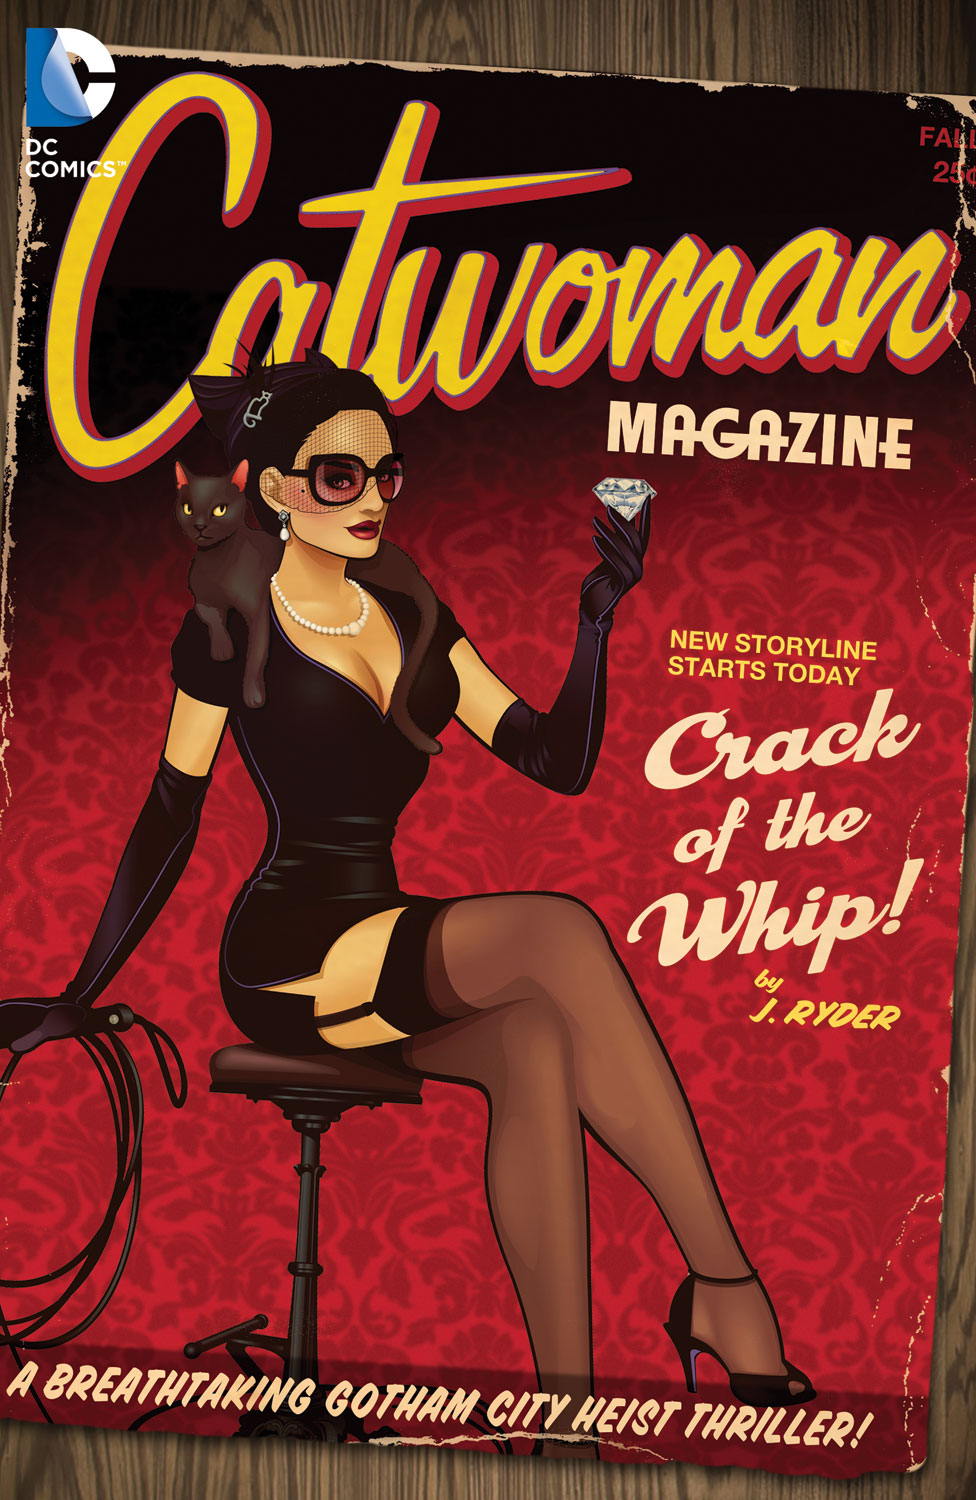 Catwoman #32 6/25/2014